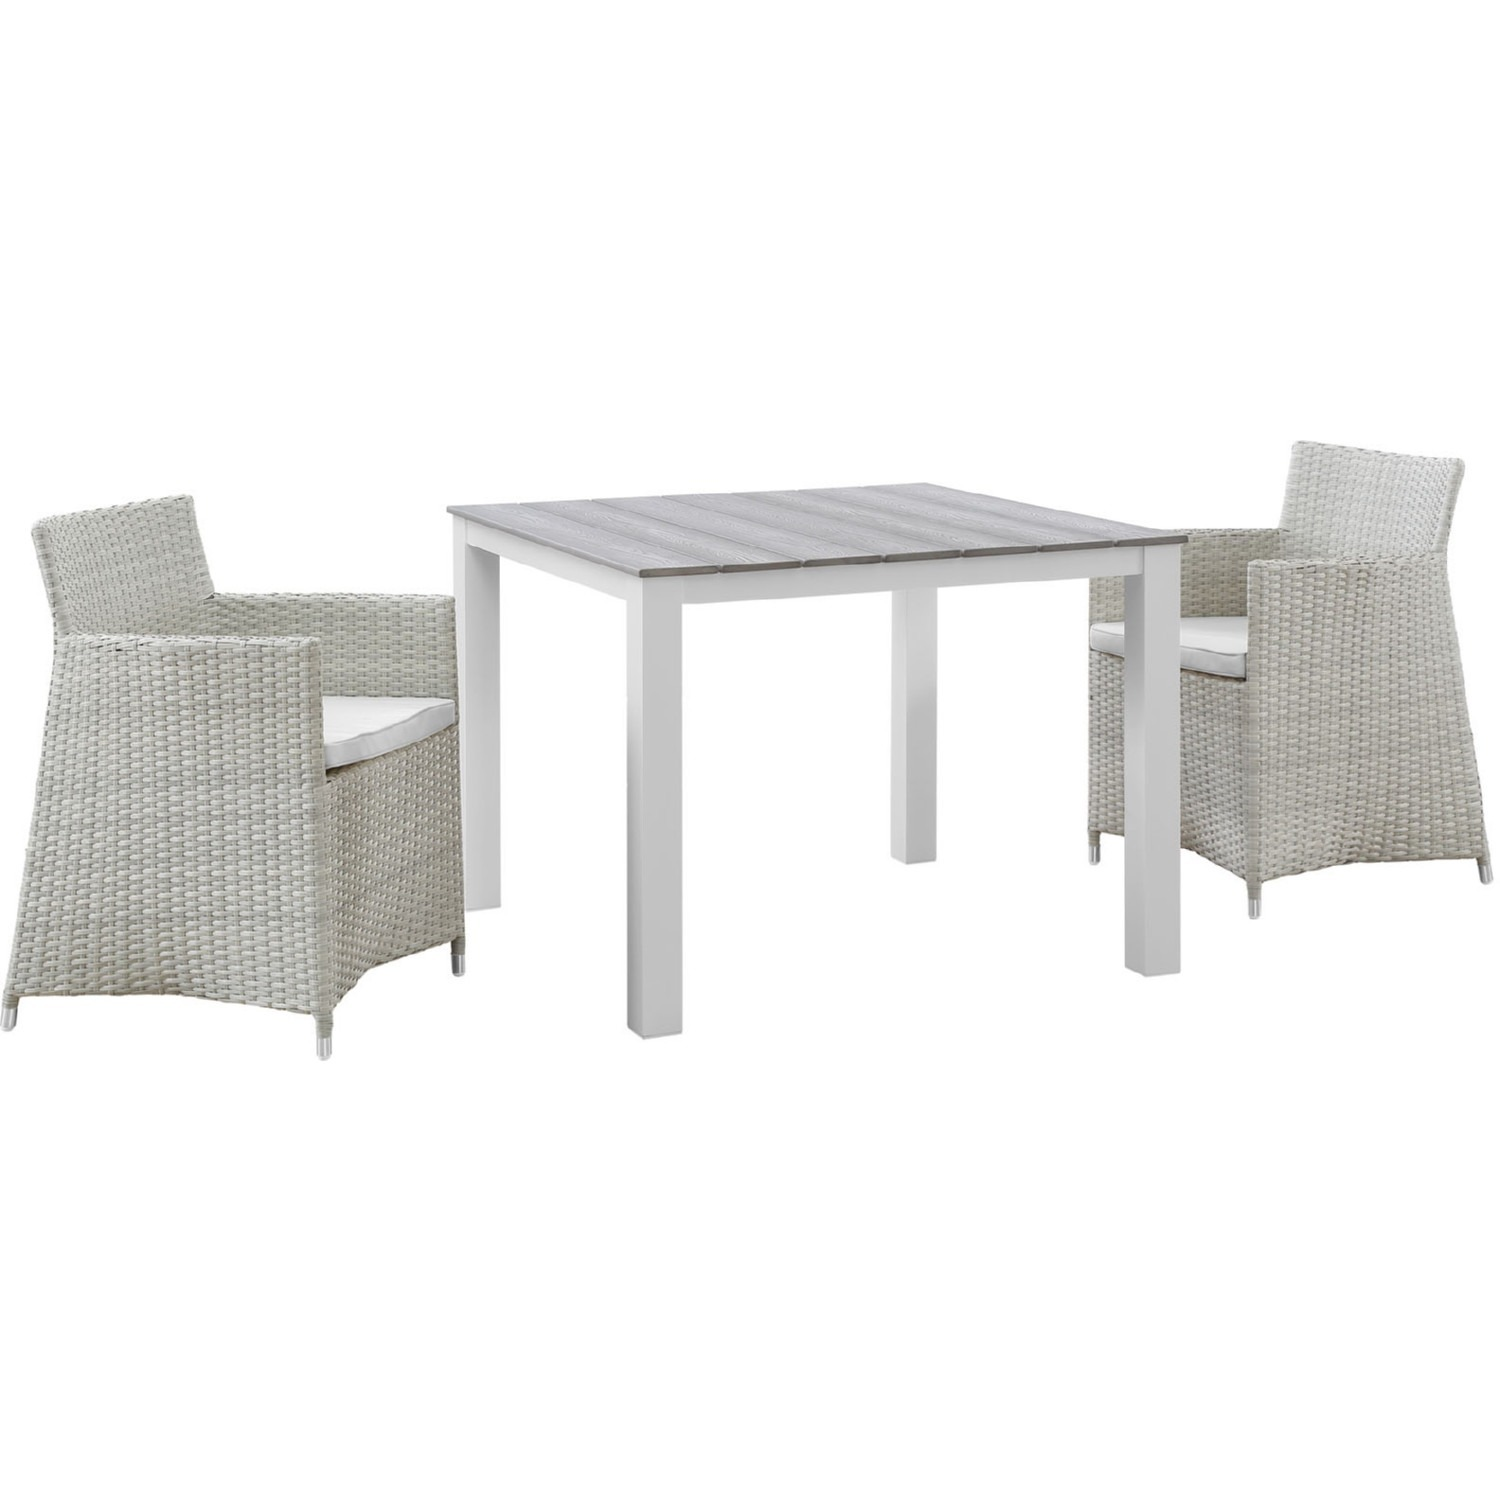 Modern 3-Piece Dining Set In White & Gray - image-0